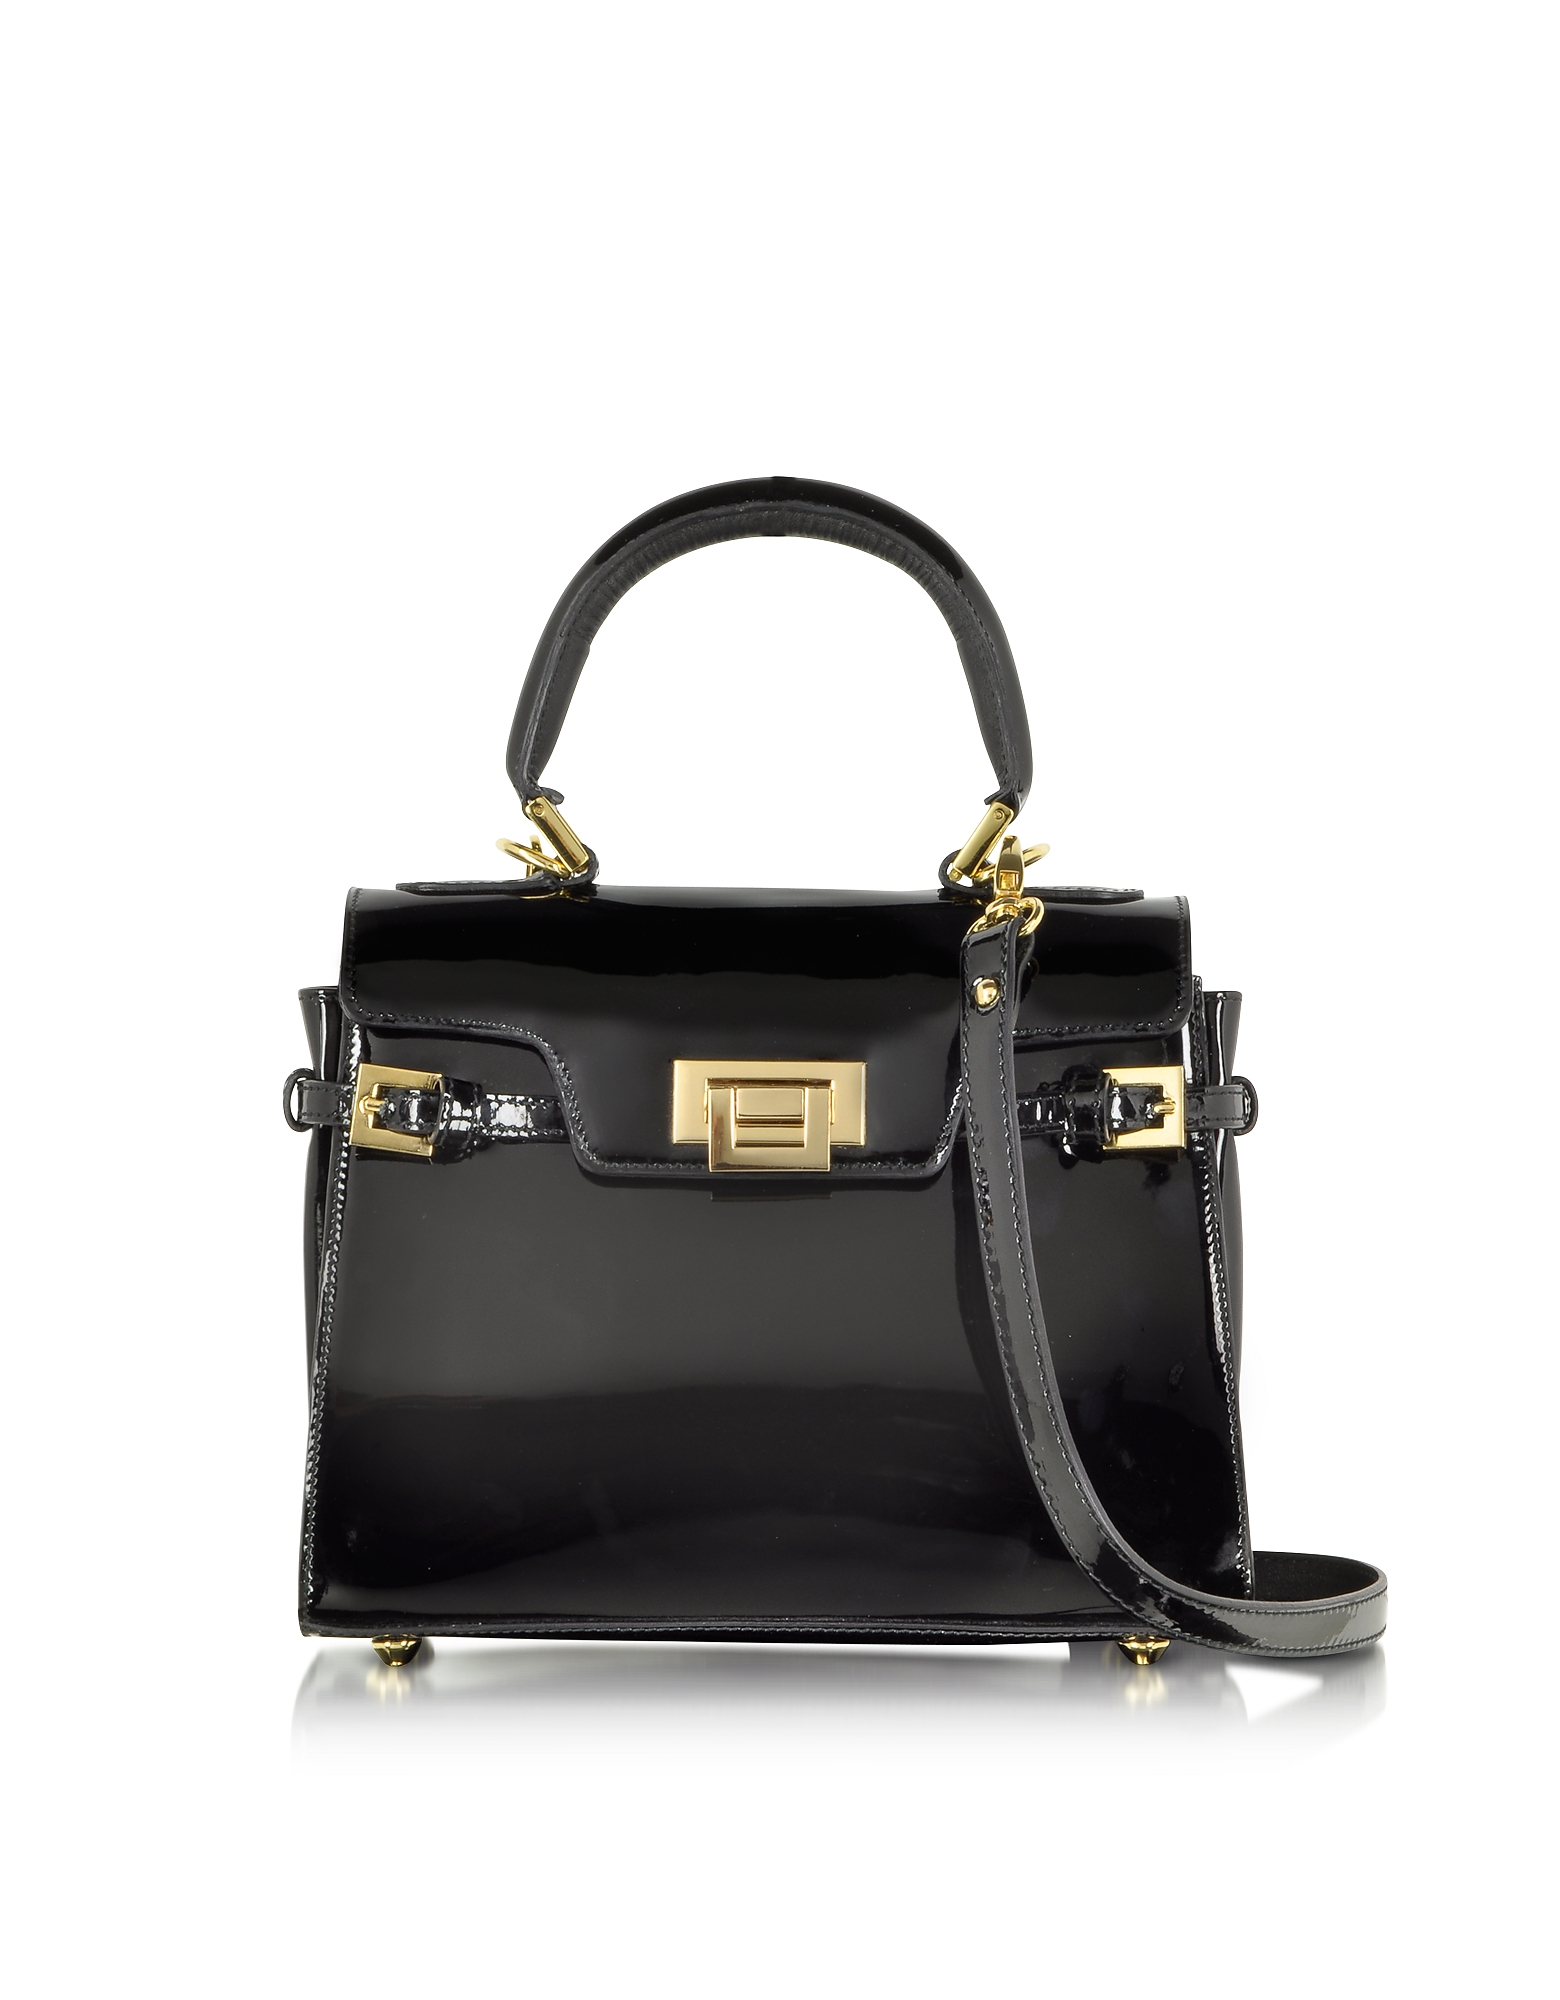 Fontanelli Handbags, Little Black Handbag